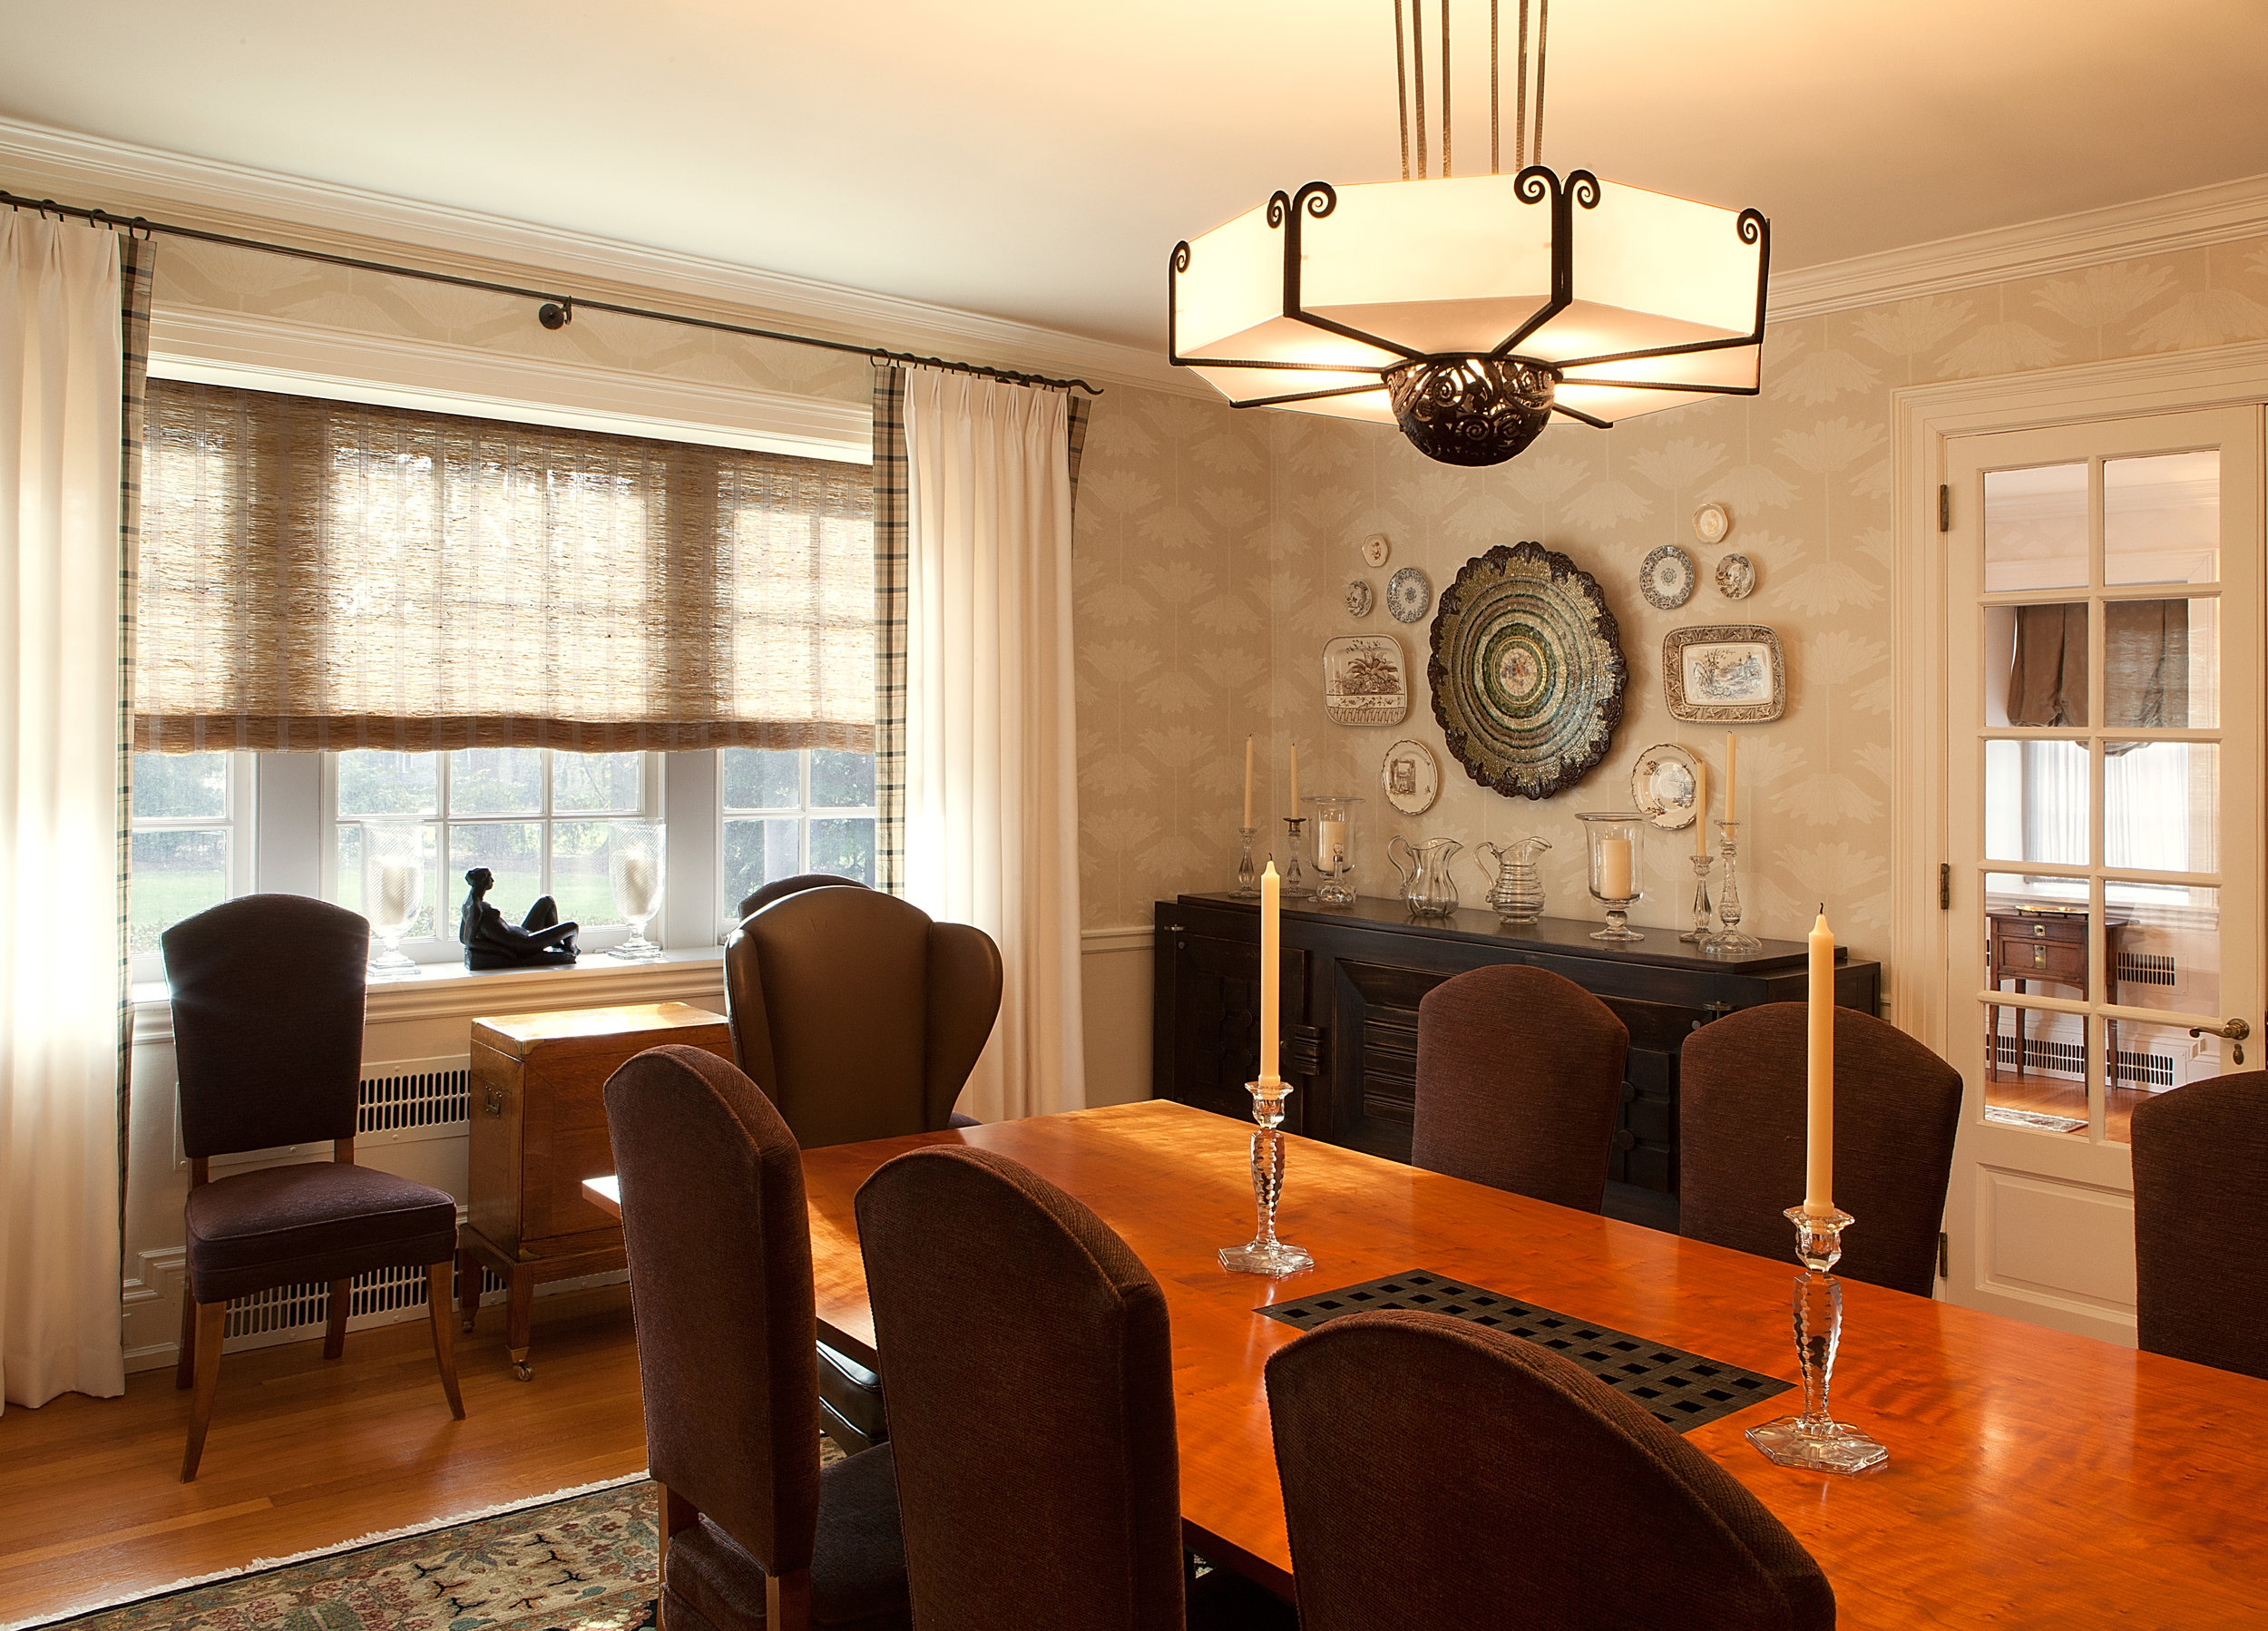 brooks_dining_room_1.jpg